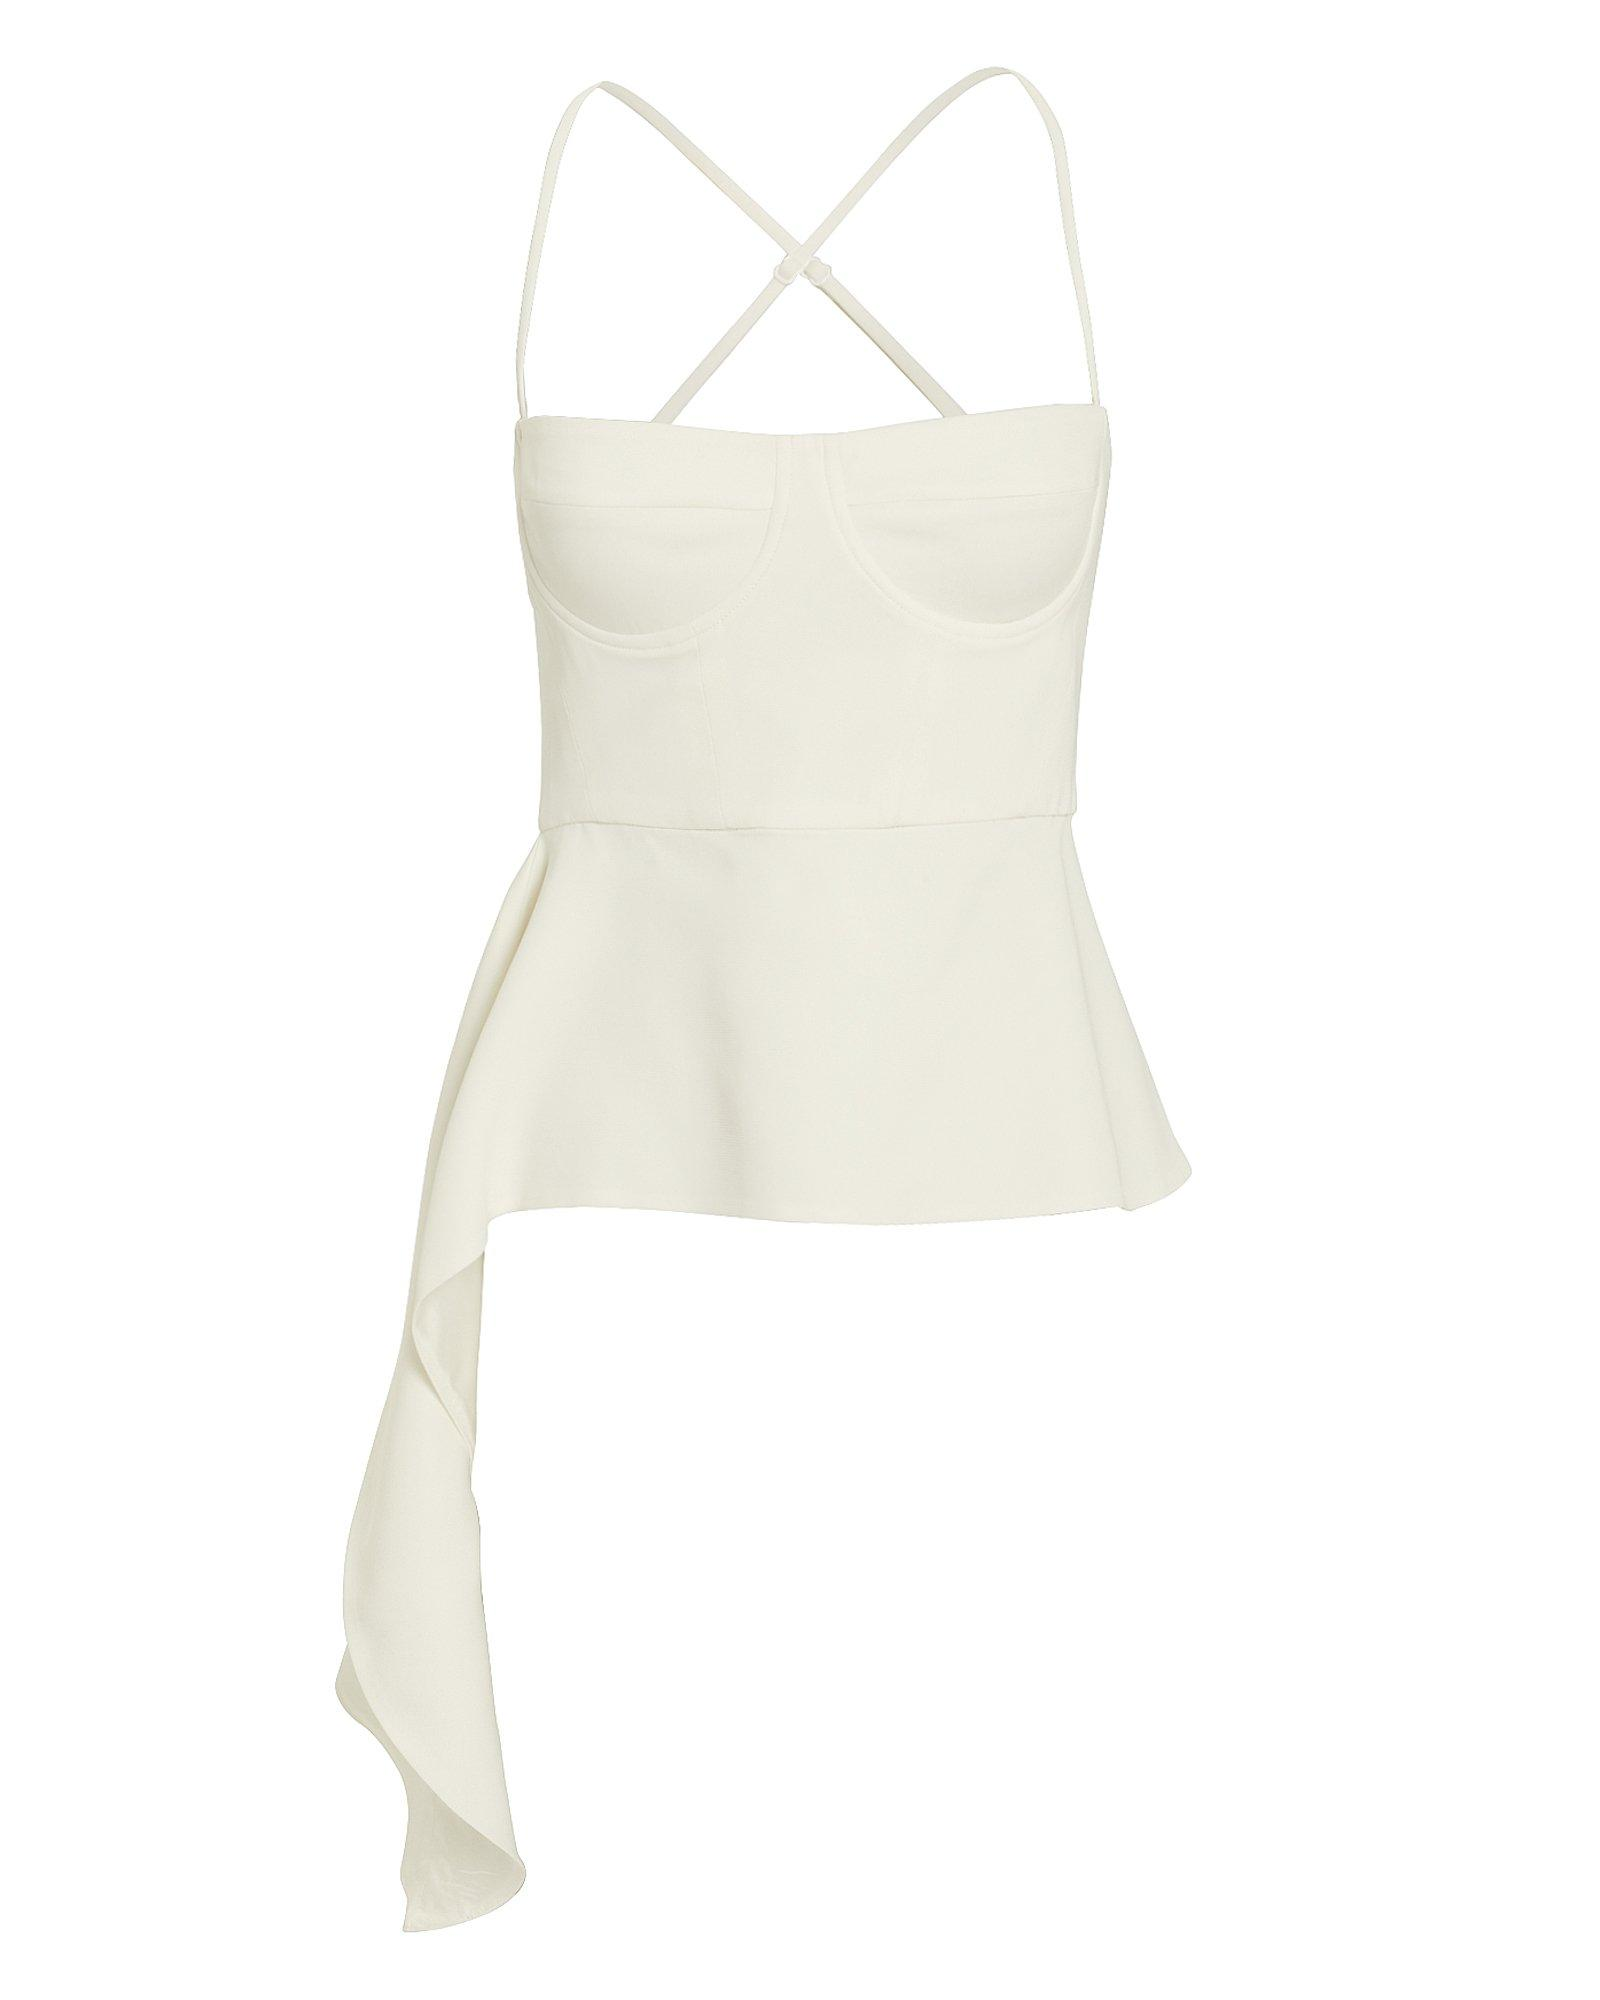 8e03356bb09821 Lyst - Michelle Mason Drape Accent Bustier Suiting Top in White